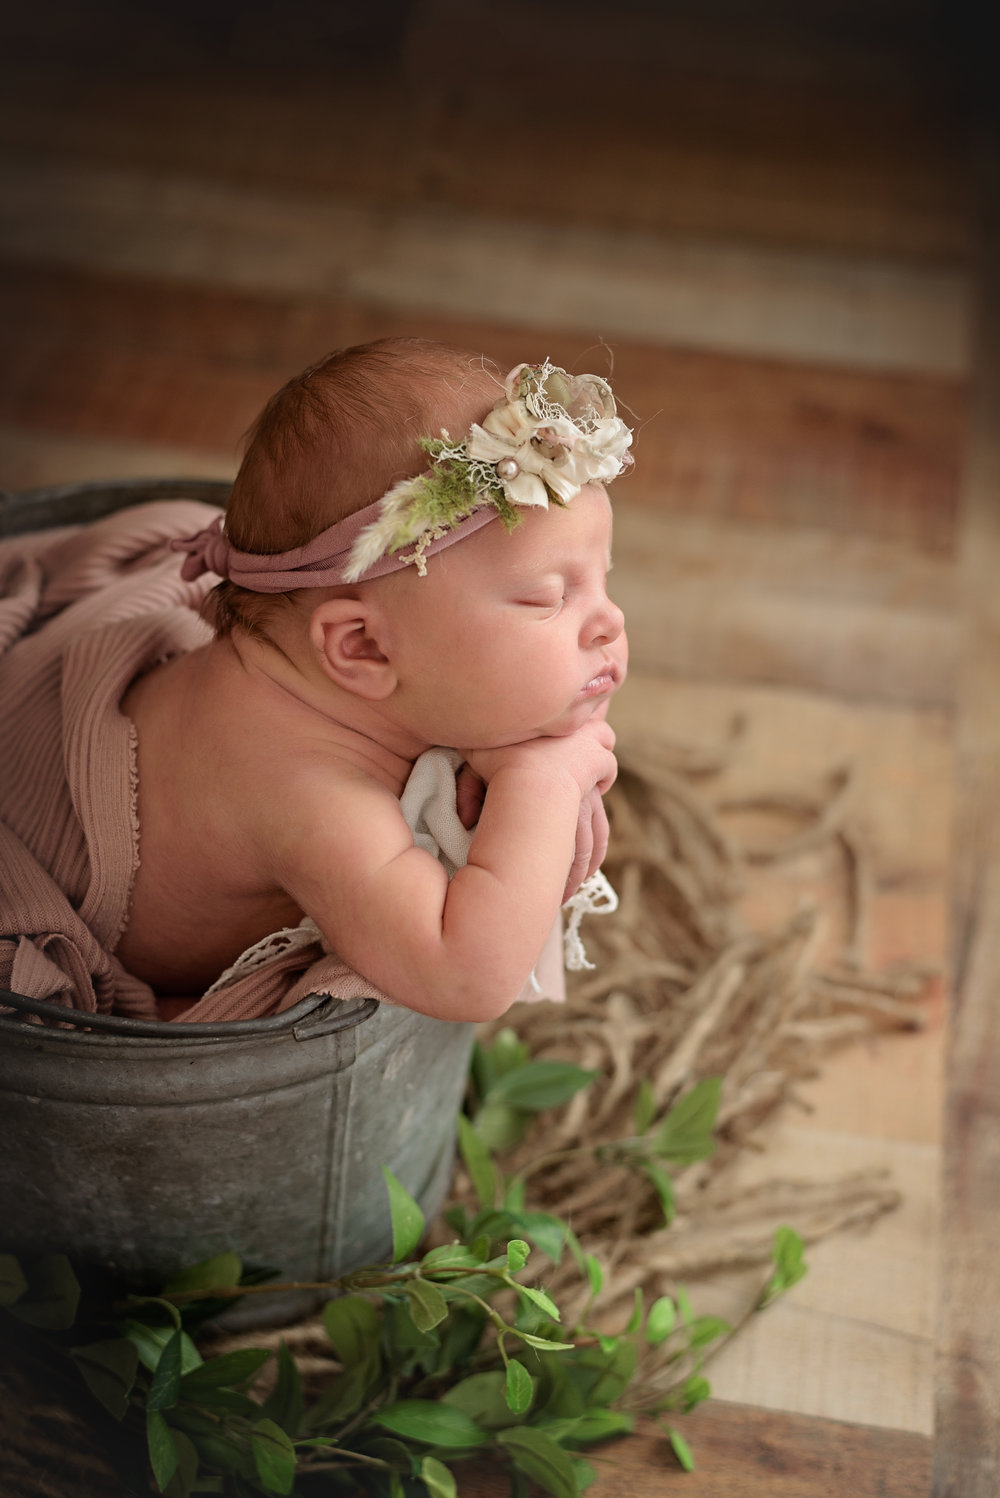 Northfield_Newborn_Photographer.jpg